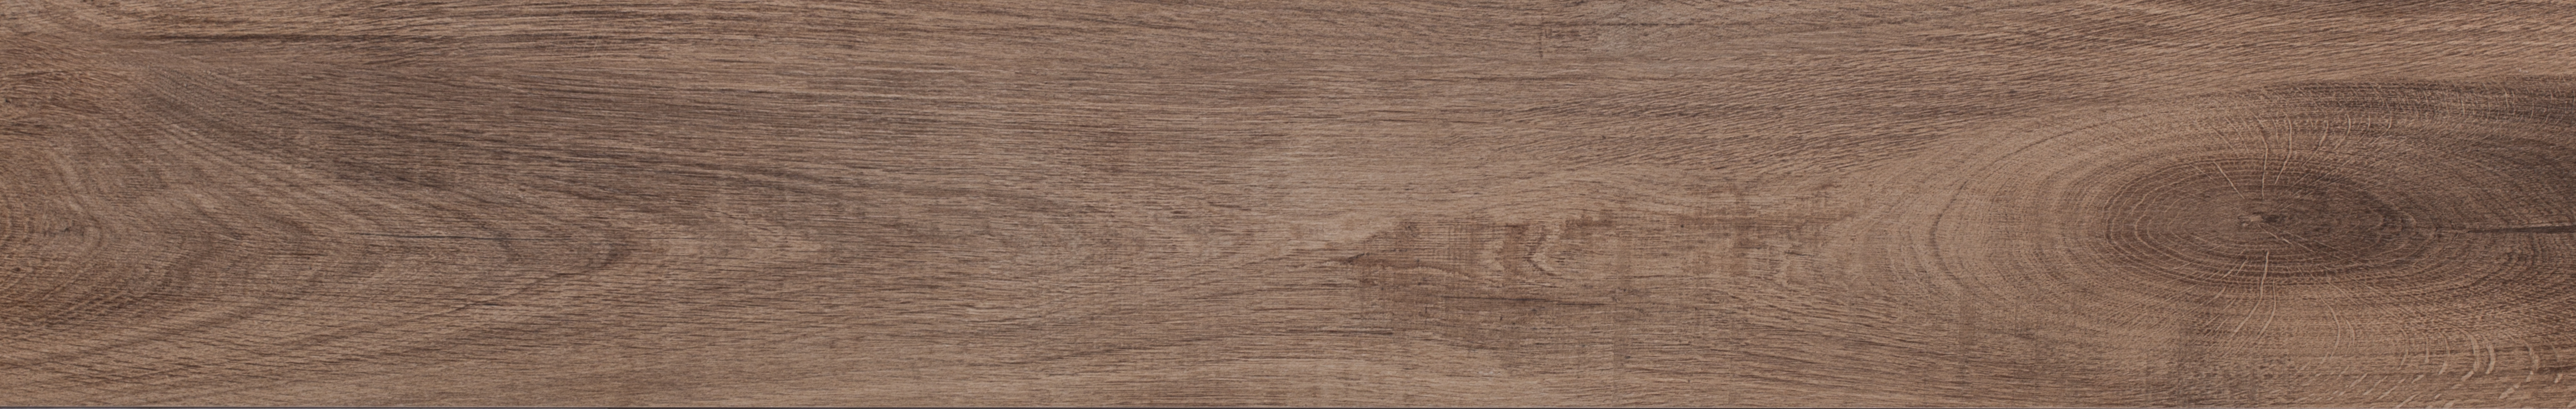 Cavallino nugat 1202x193x10mm Wood Effect Tiles2